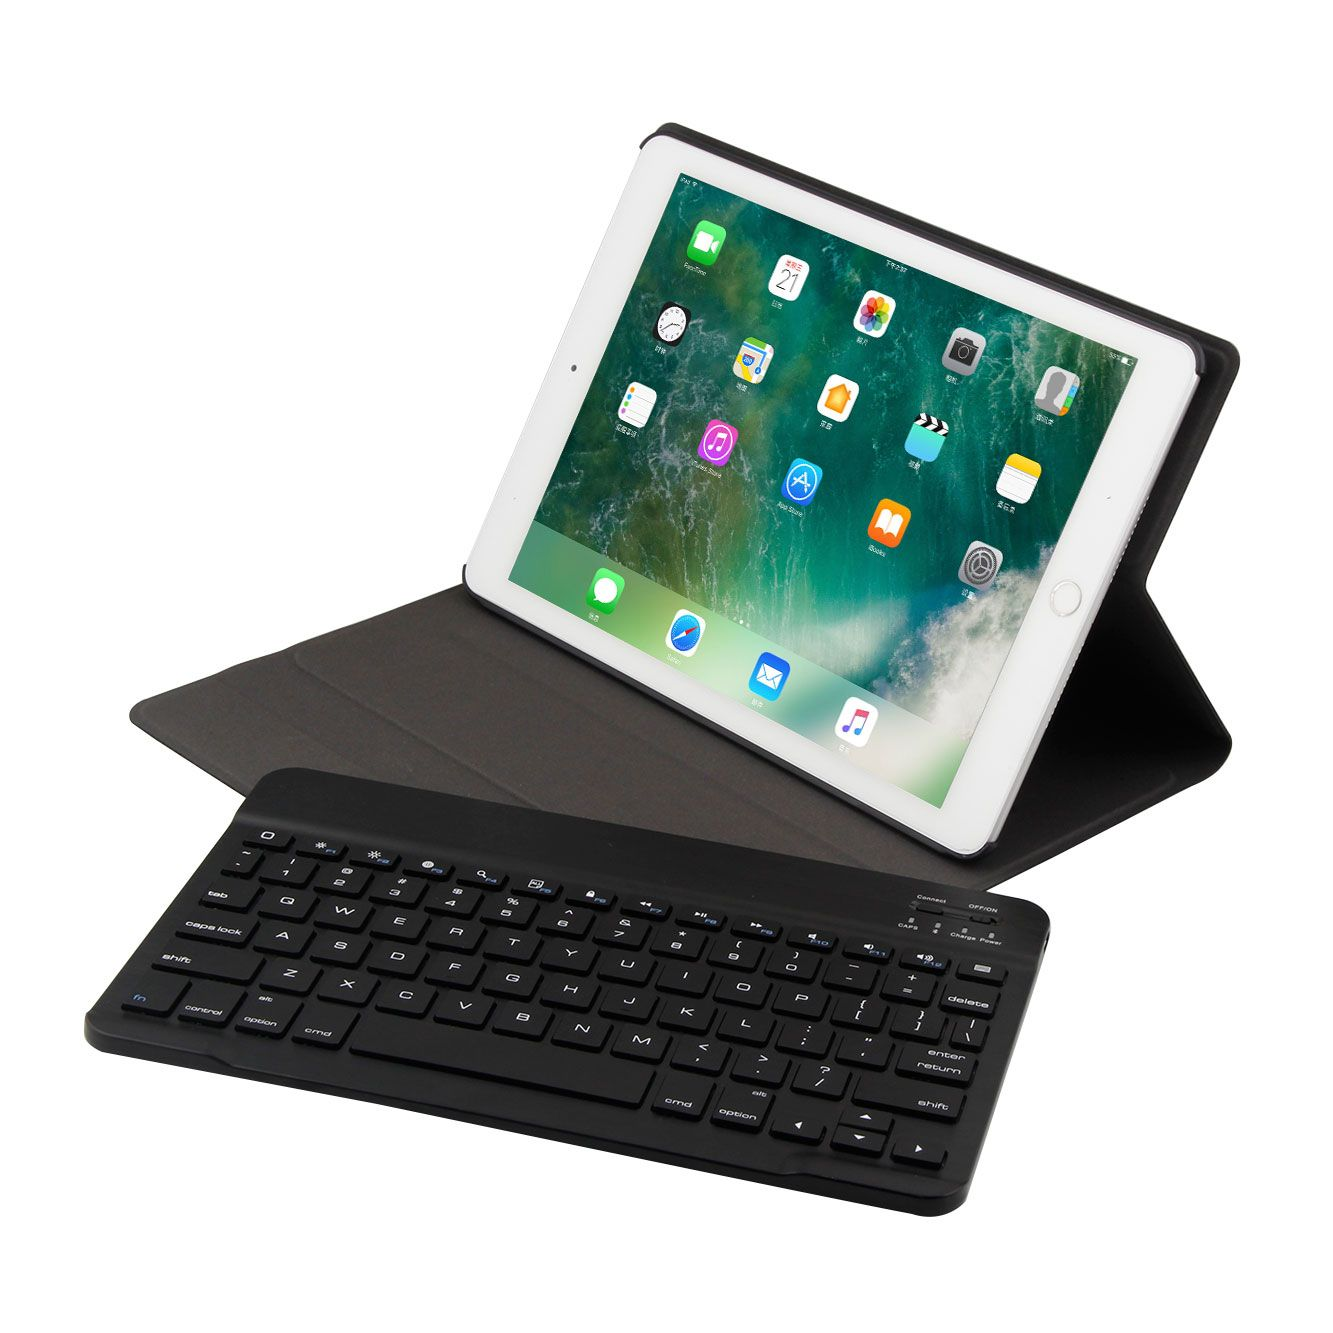 Image 5 - For New Ipad 9.7 2017 A1822 A1823 Wireless Bluetooth Keyboard Ultra Thin PU Leather + ABS Keyboard Removable For Ipad air 1/2-in Keyboards from Computer & Office